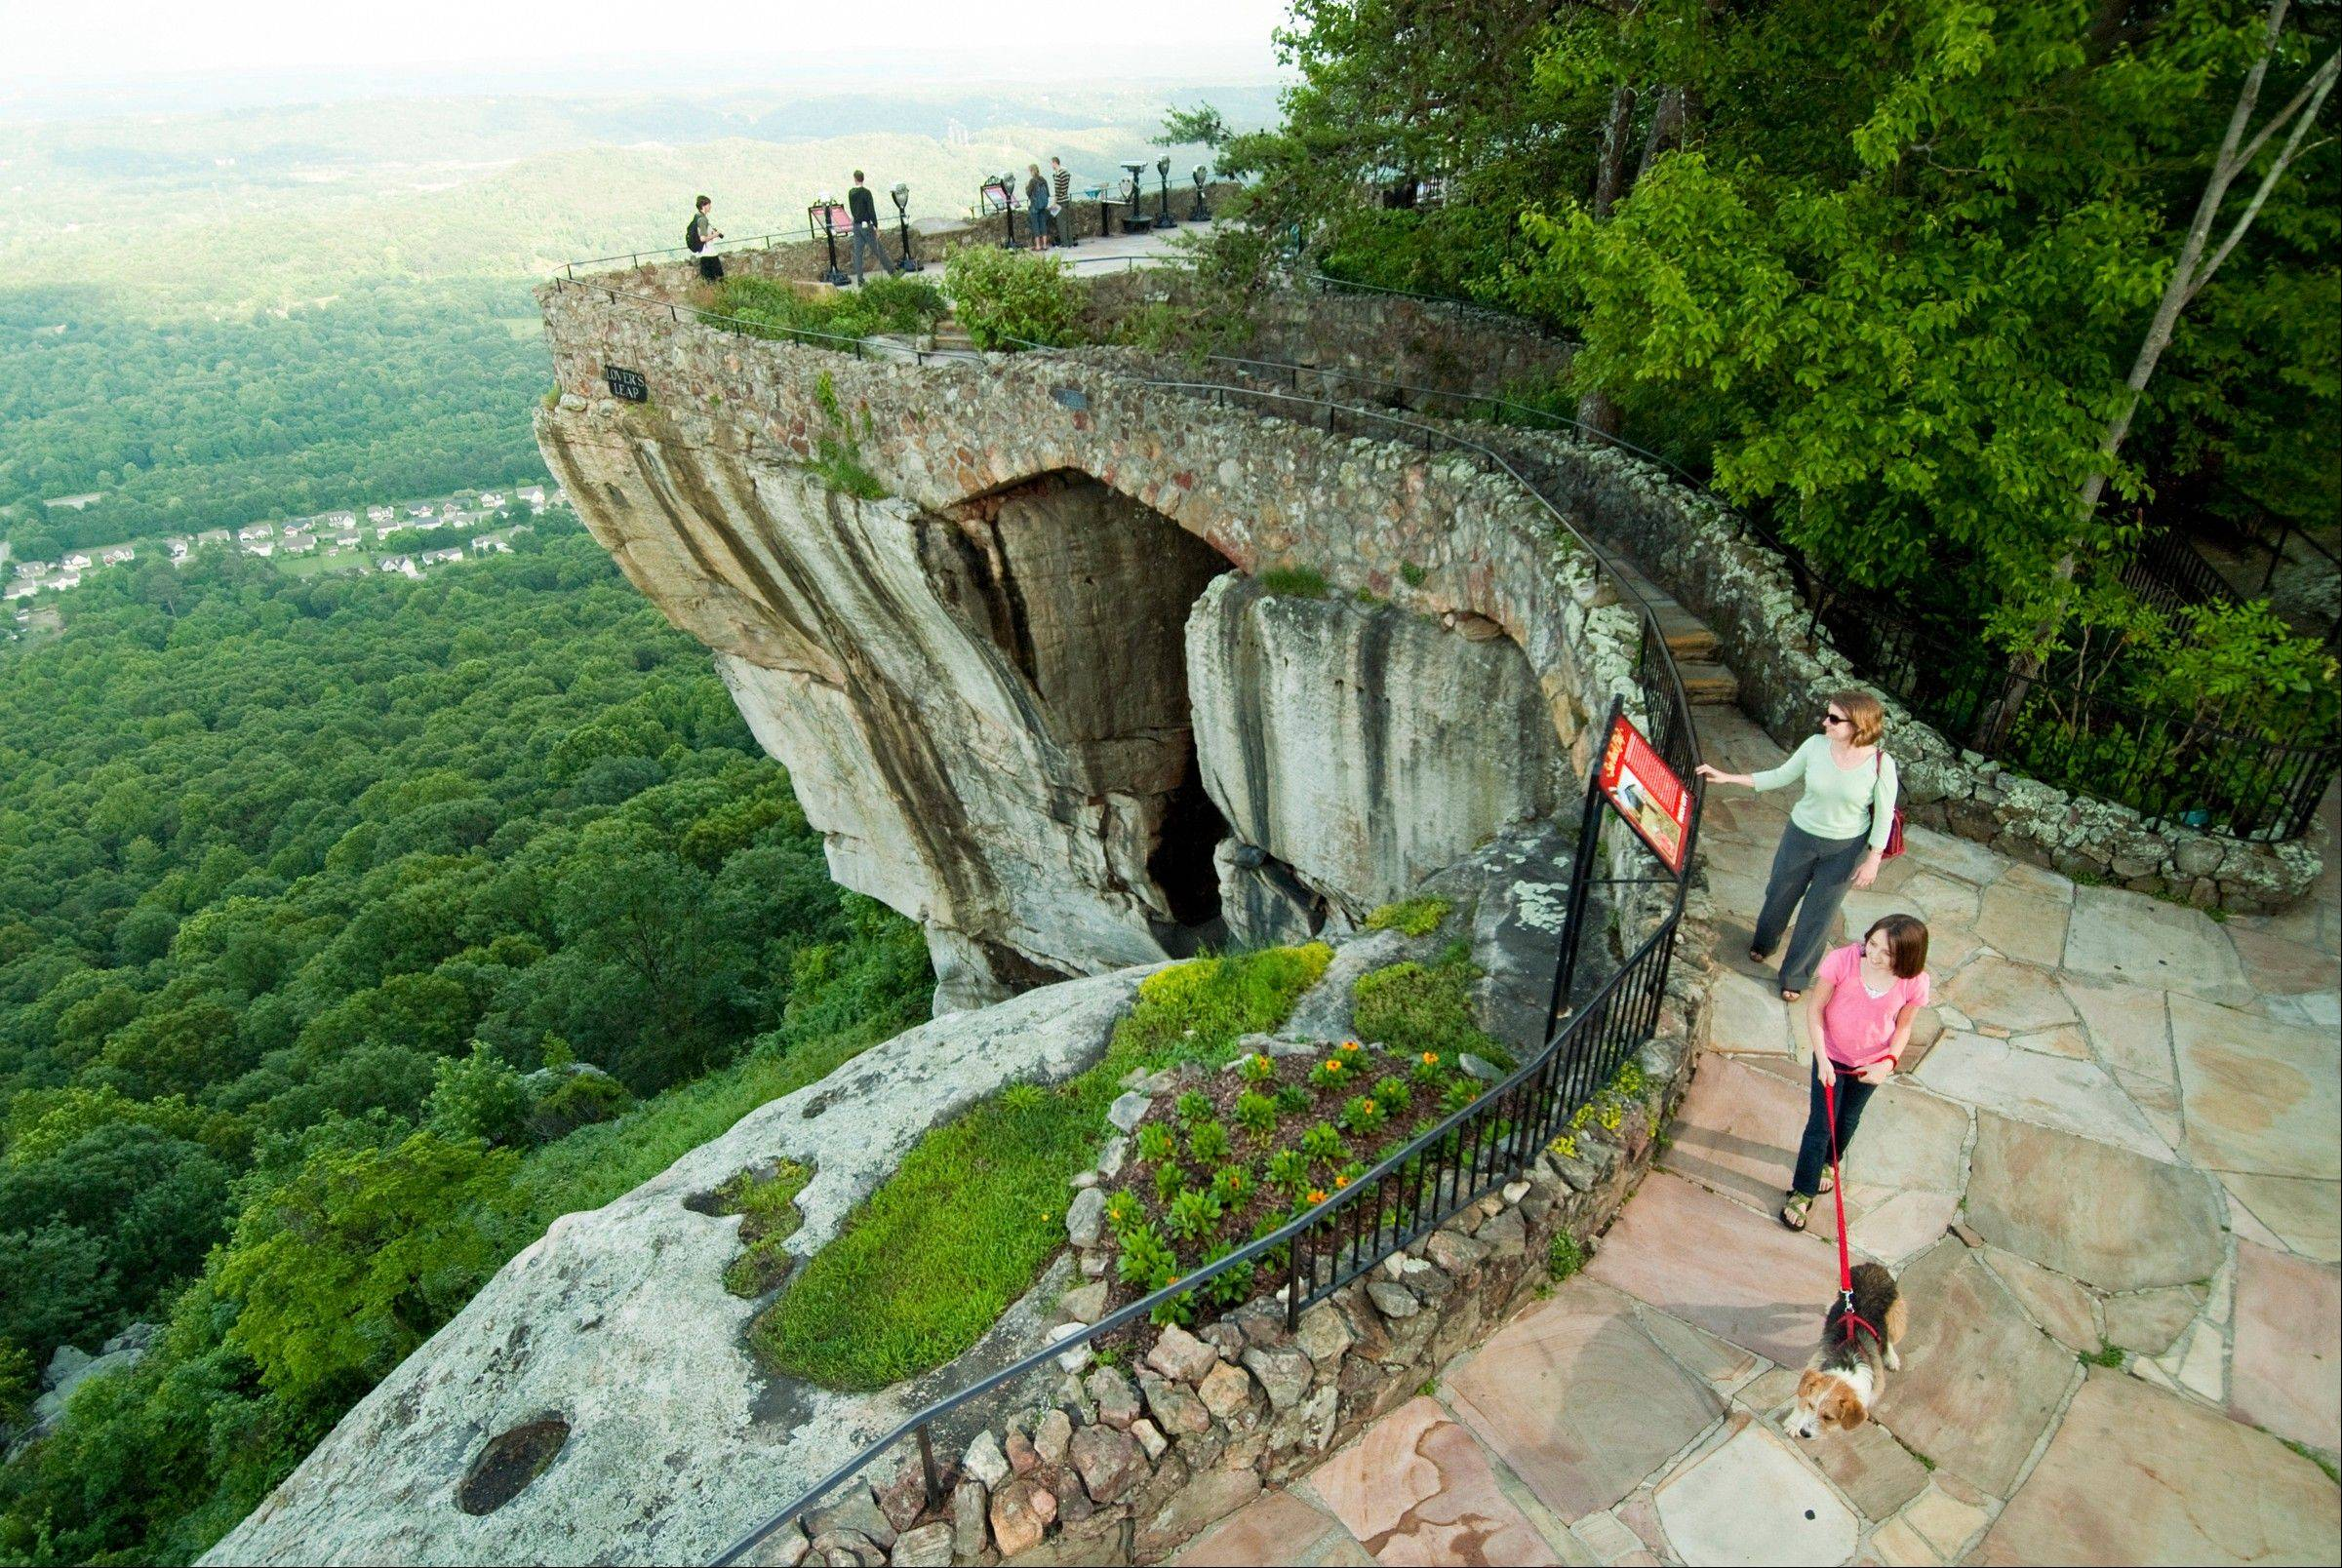 Lover's Leap, one of the well-known scenic spots along the attraction's Enchanted Trail, is shown at Lookout Mountain, Ga. Rock City is celebrating its 80th year.